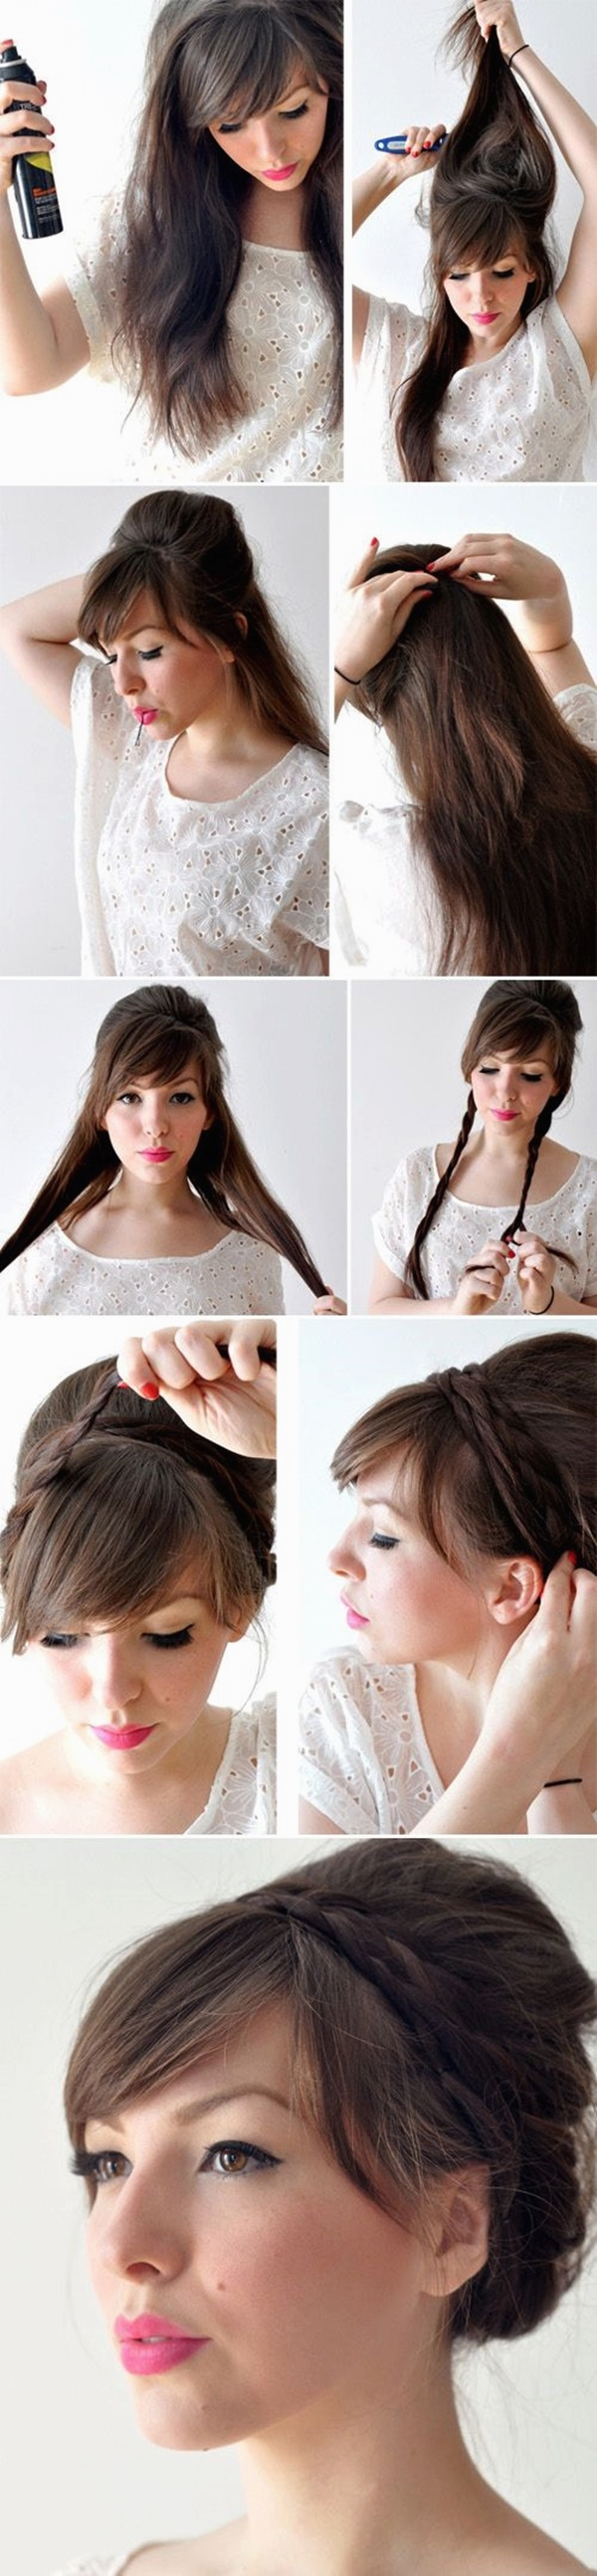 This hairstyle is basically for those who love keeping asymmetrical bangs since it adds up to the incomparable look. Divide your hair centrally and pin them up. Further, section the head vertically into two and simply make a French braid from each part. Make a bun by winding them all over the head as shown. Put on winged eyeliner to make your face a bit more expressive.